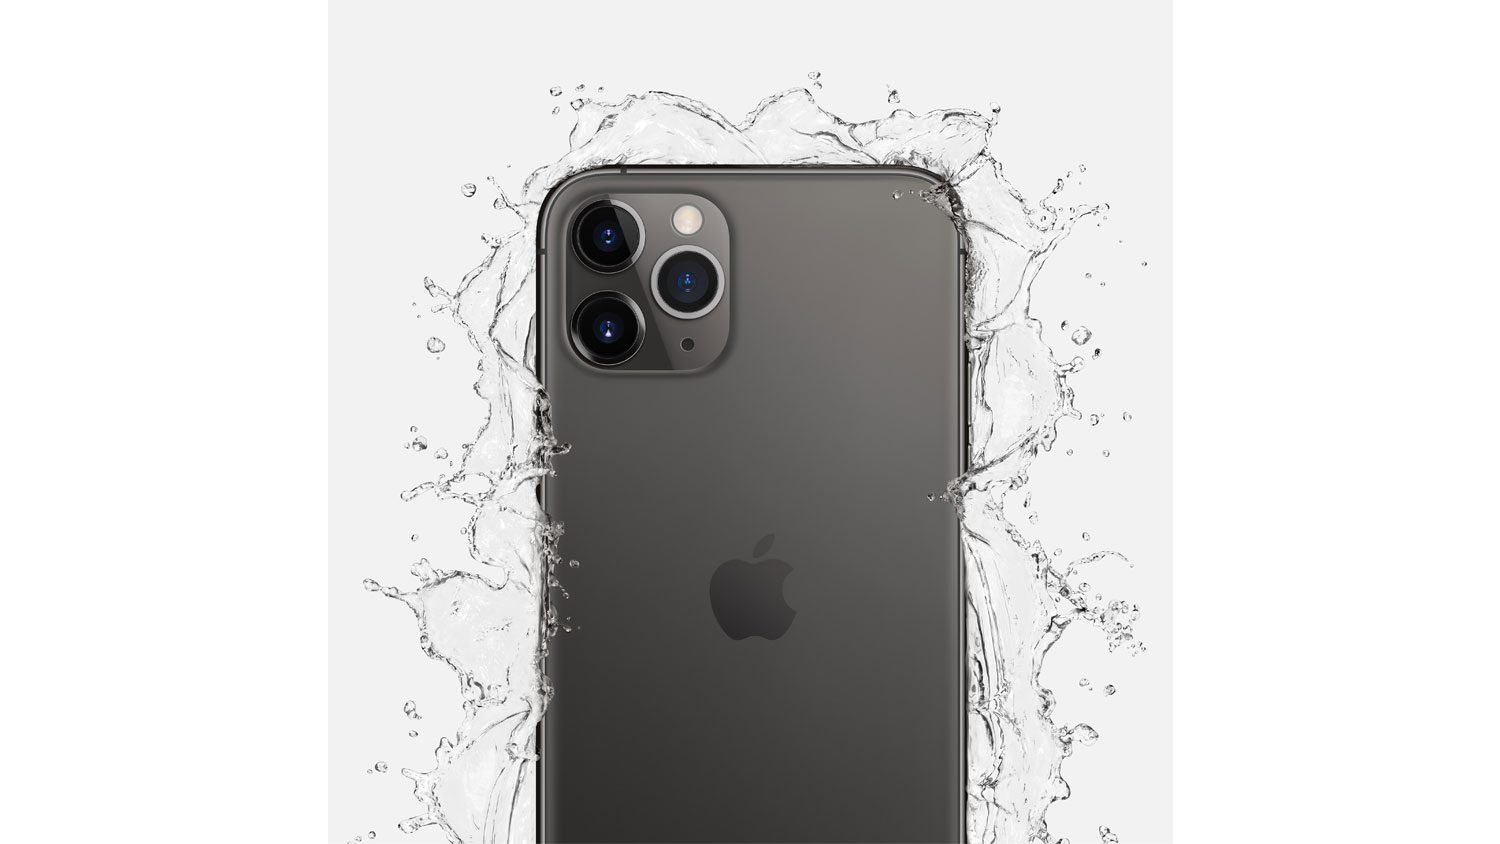 Iphone 11 Pro Max 512gb On Spark Space Grey Harvey Norman